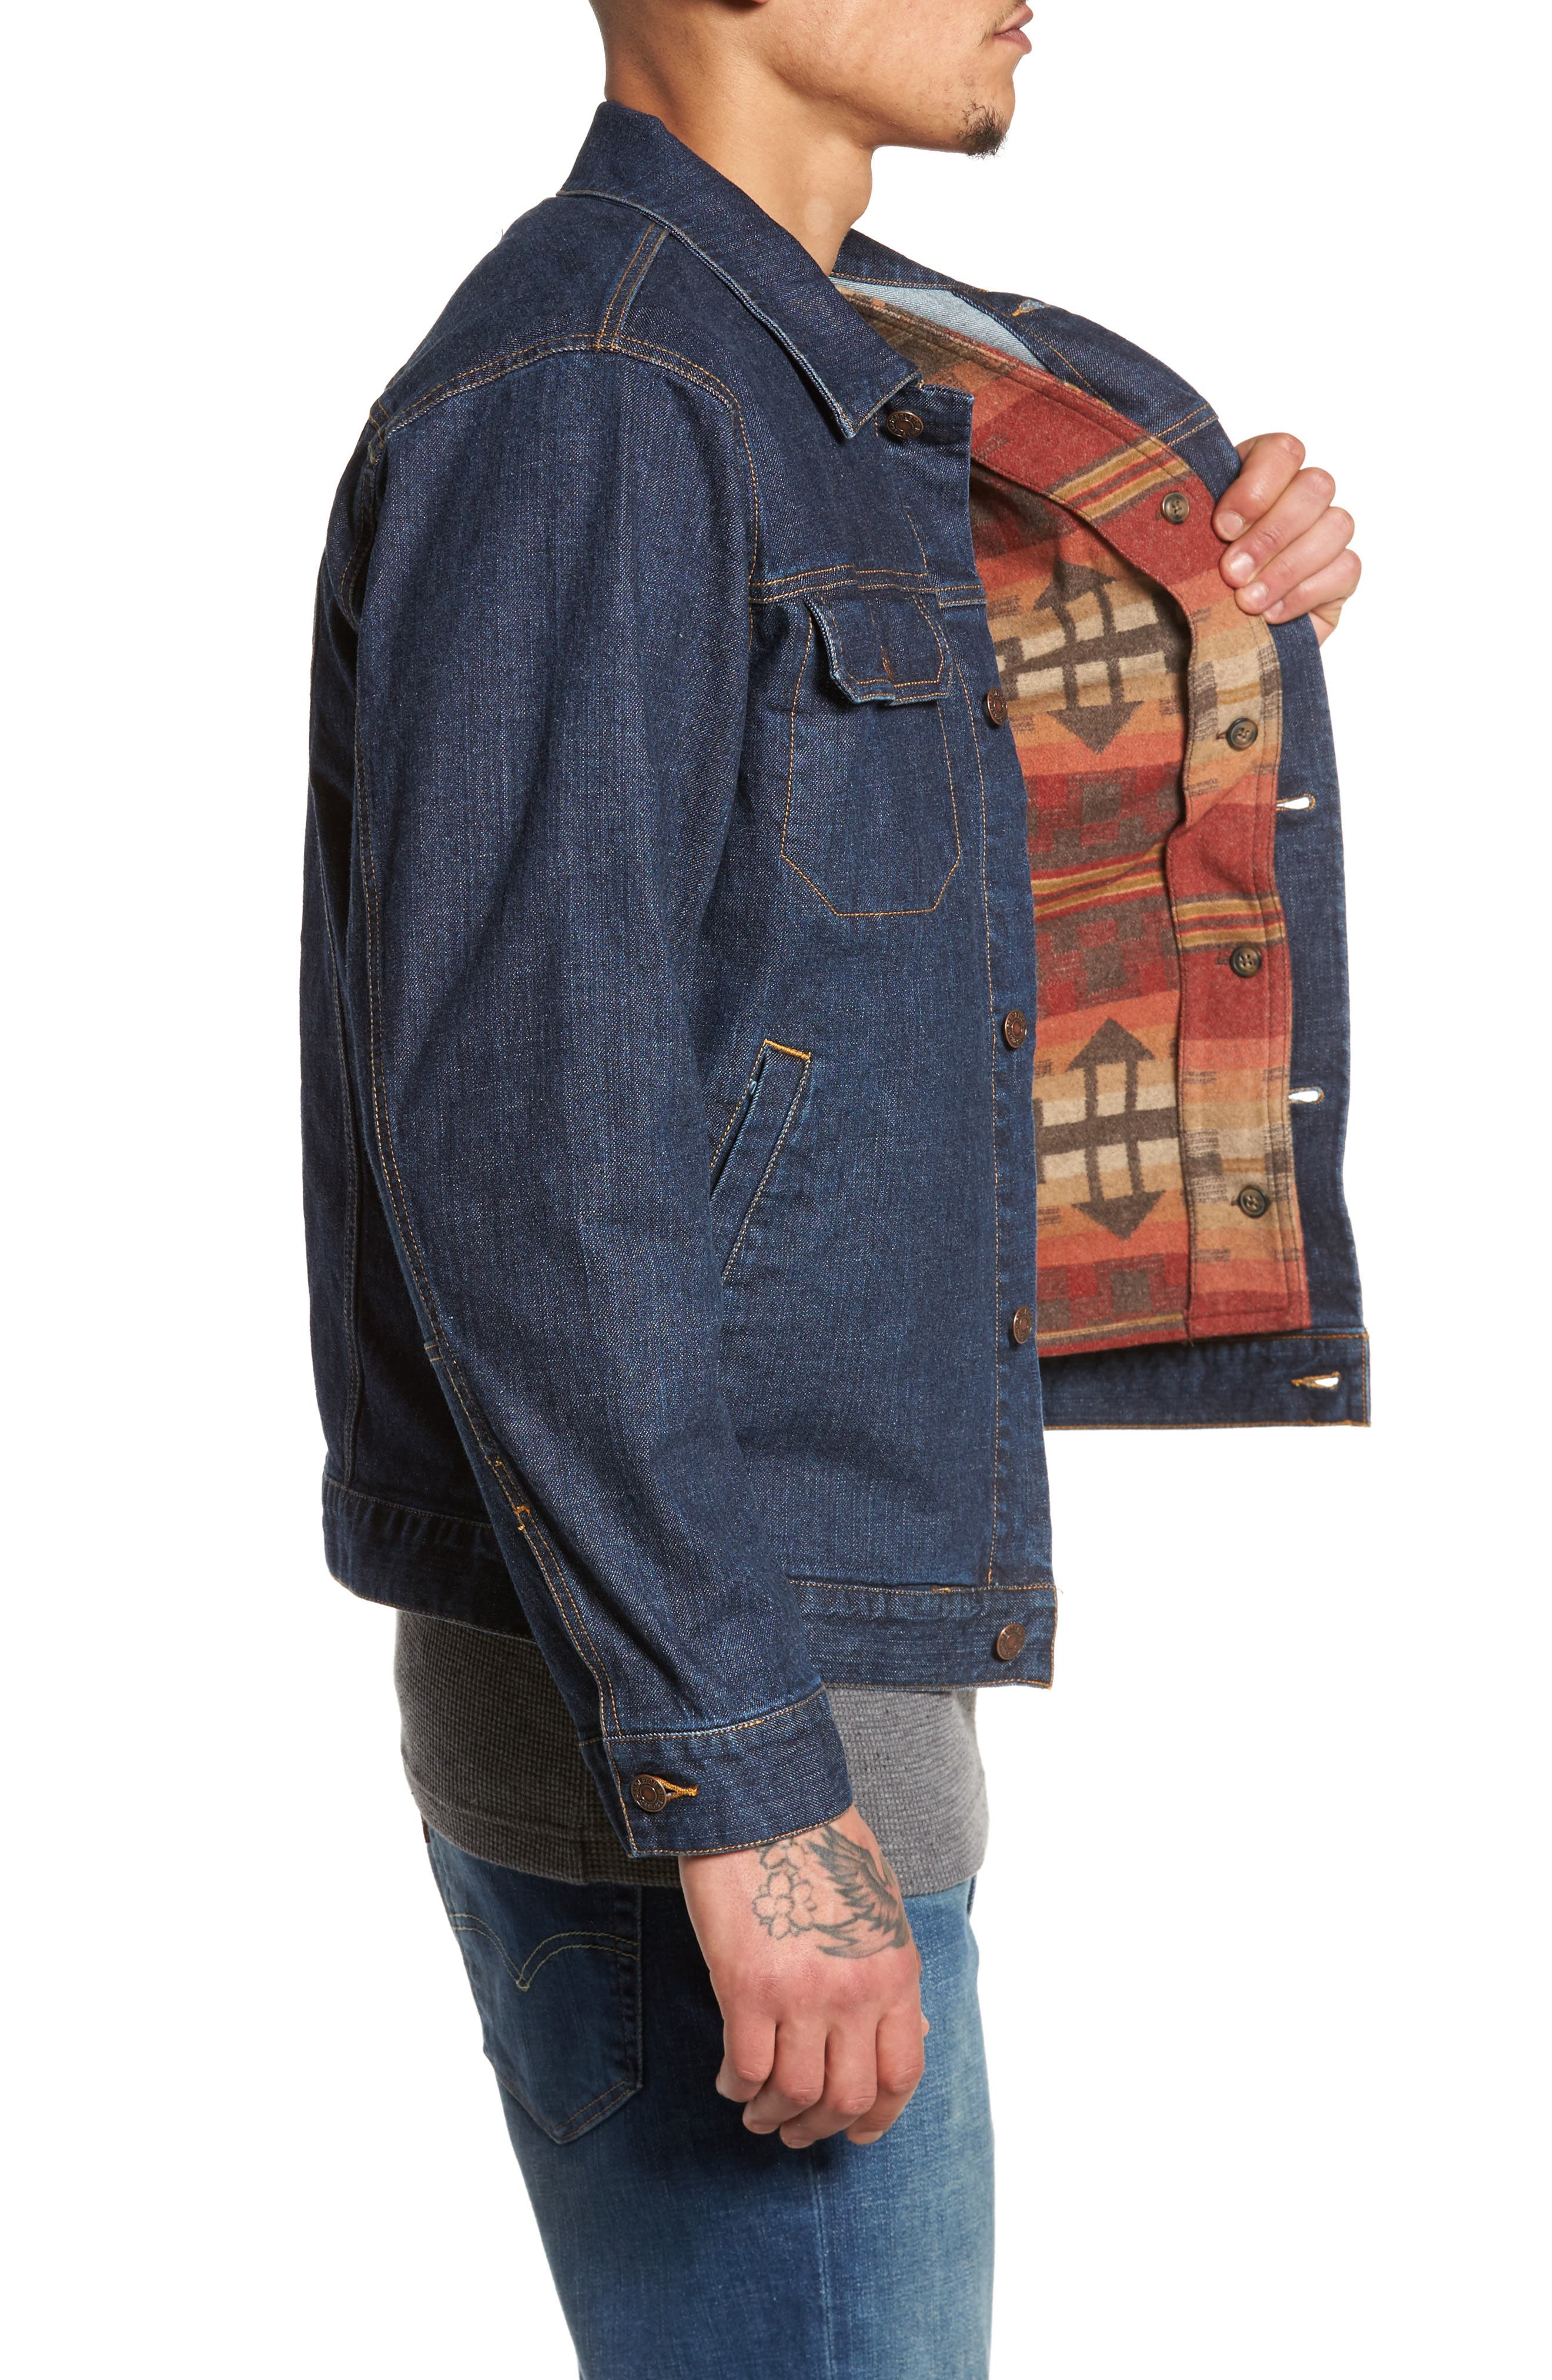 Denim Jacket with Removable Wool Vest,                             Alternate thumbnail 3, color,                             Denim With Broken Arrow Red